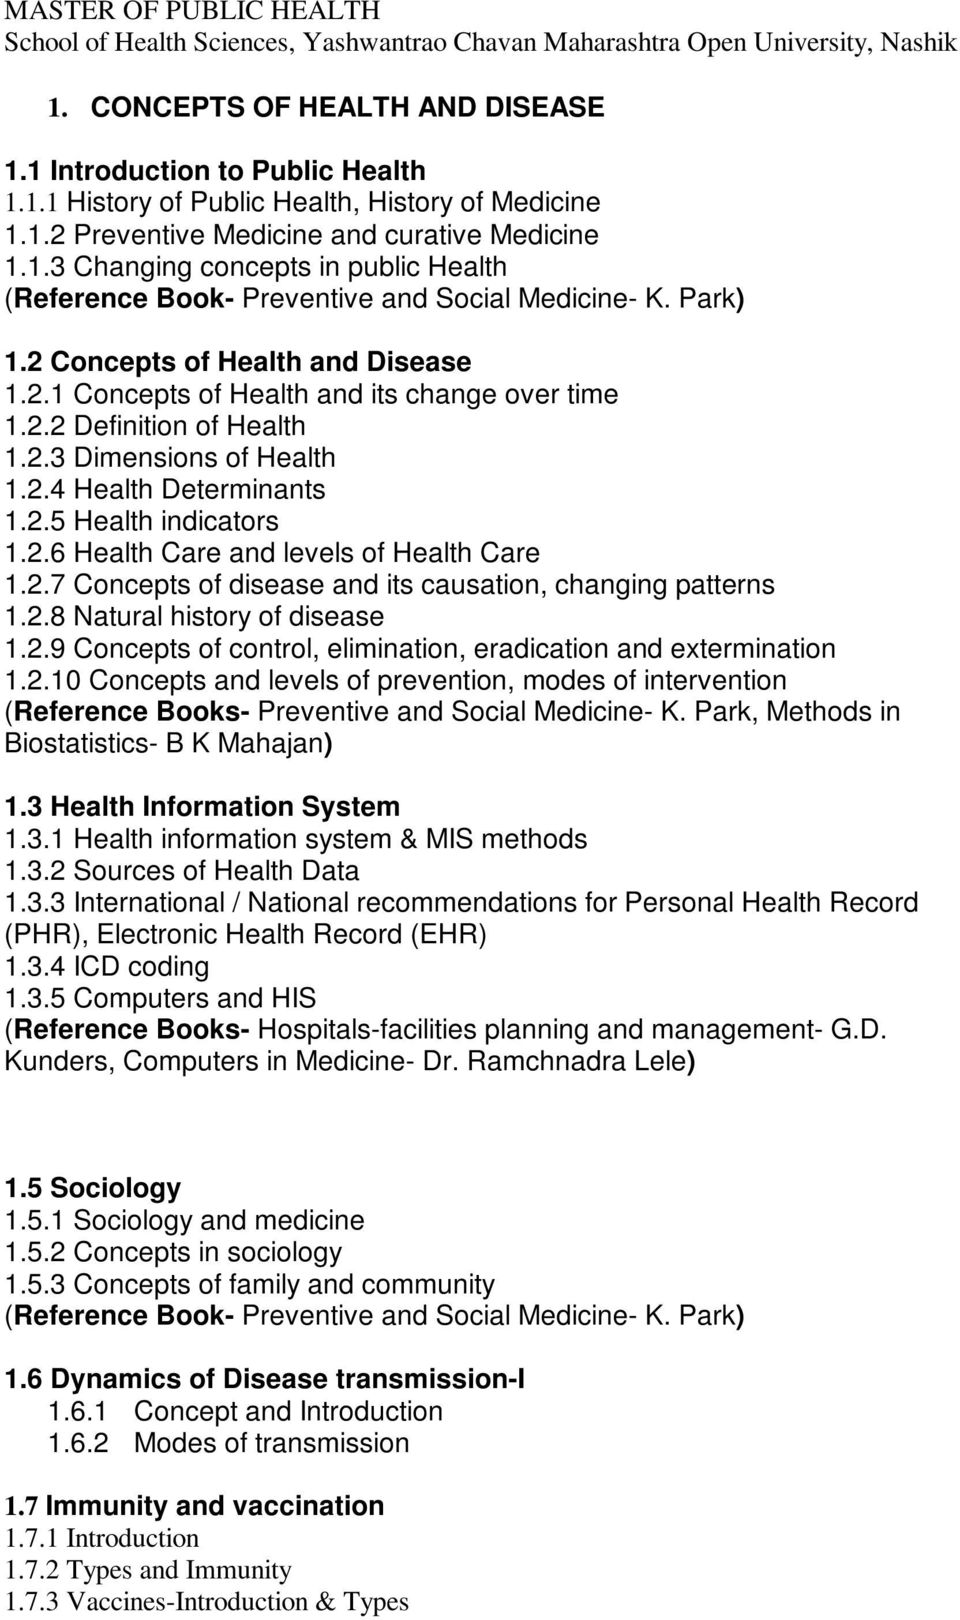 Master of public health school of health sciences yashwantrao 27 concepts of disease and its causation changing patterns 128 natural history of fandeluxe Images